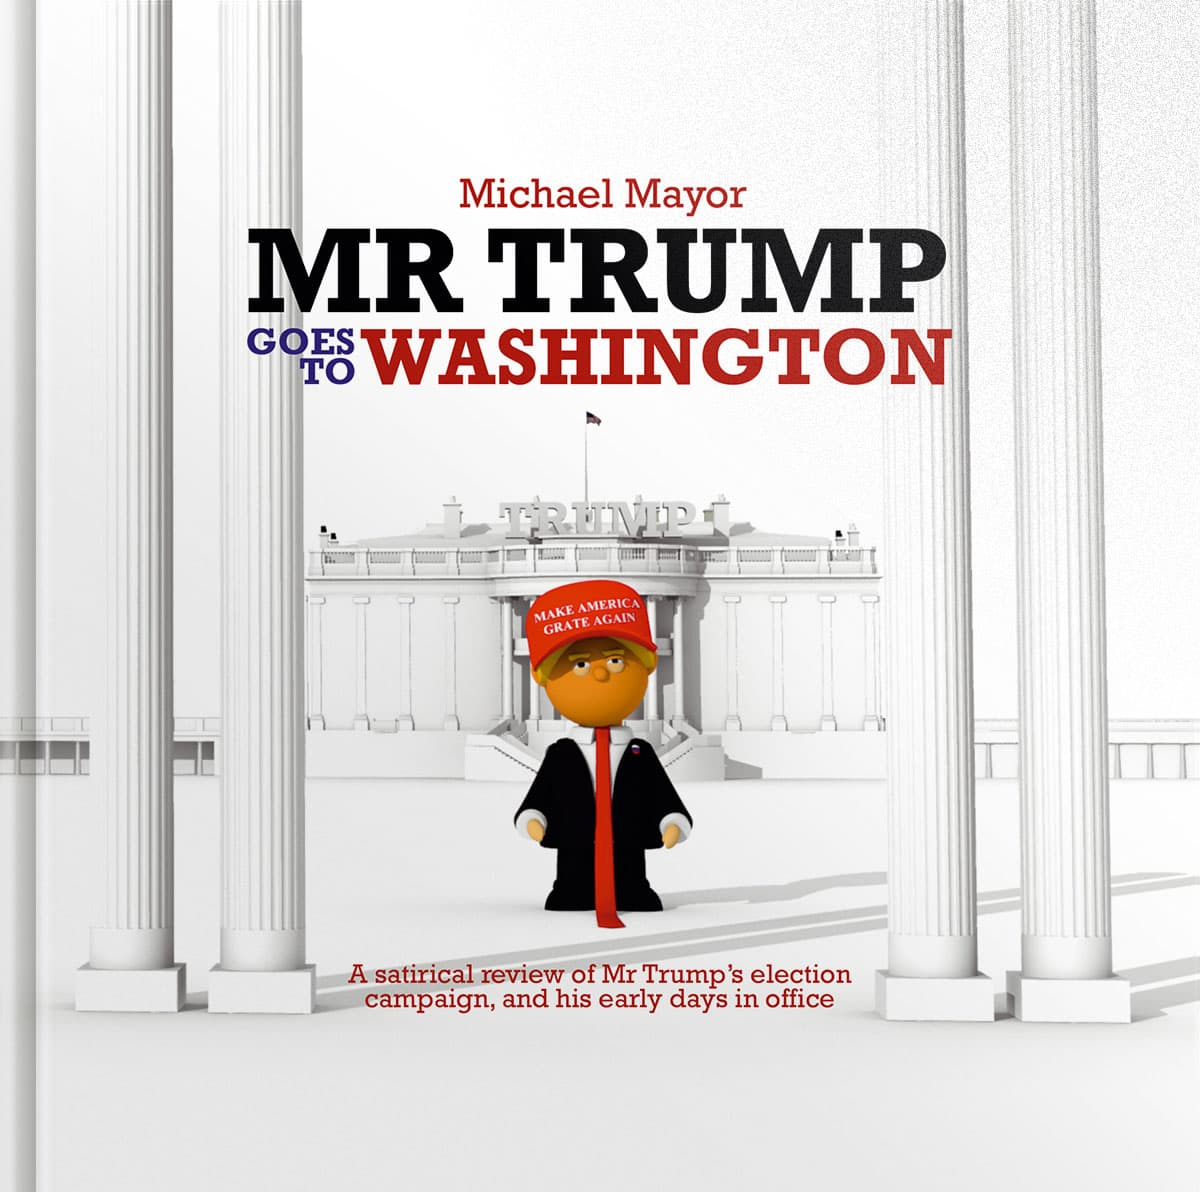 Mr Trump goes to Washington